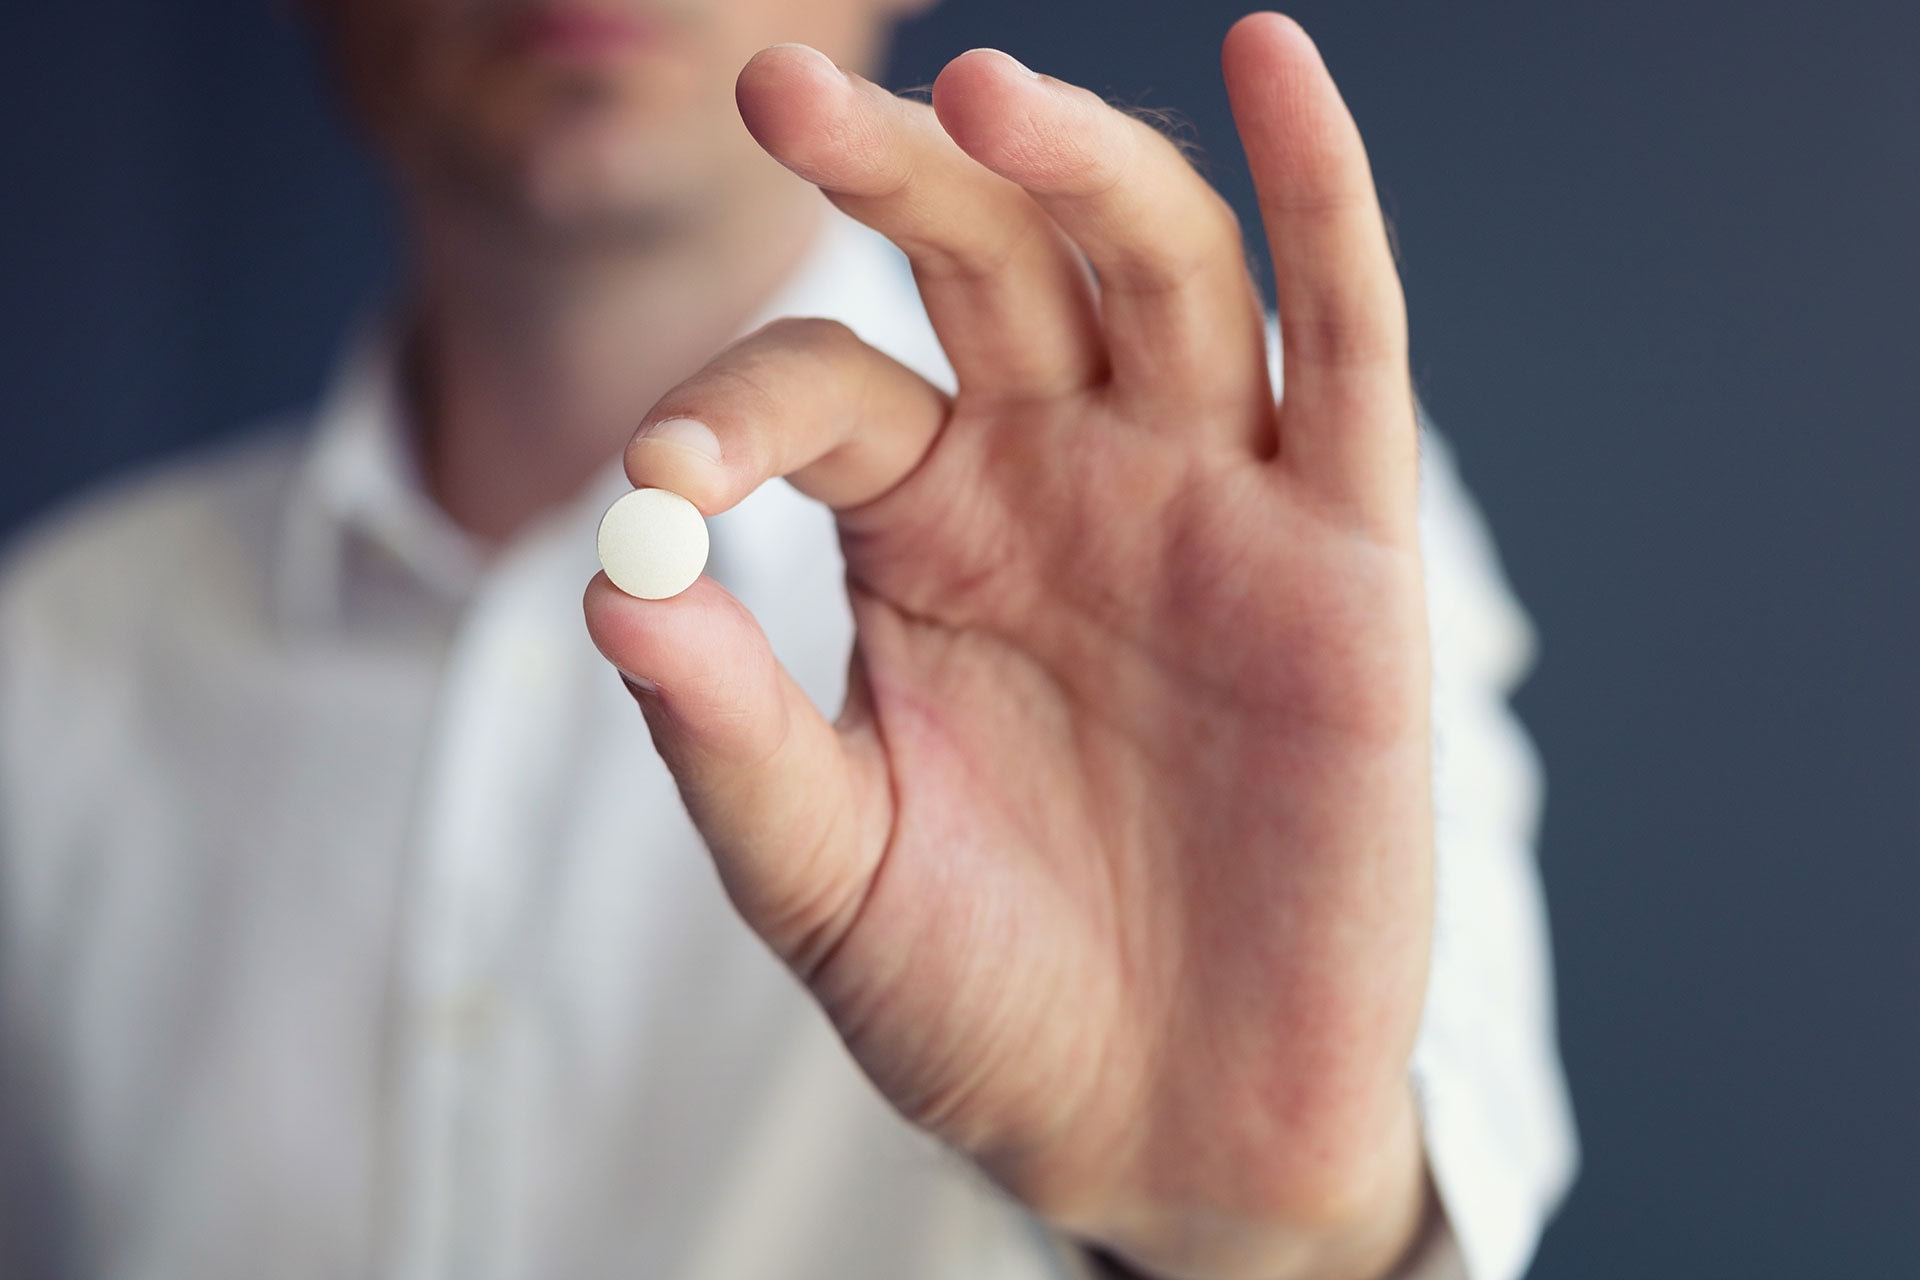 man holding the miracle drug aspirin pill